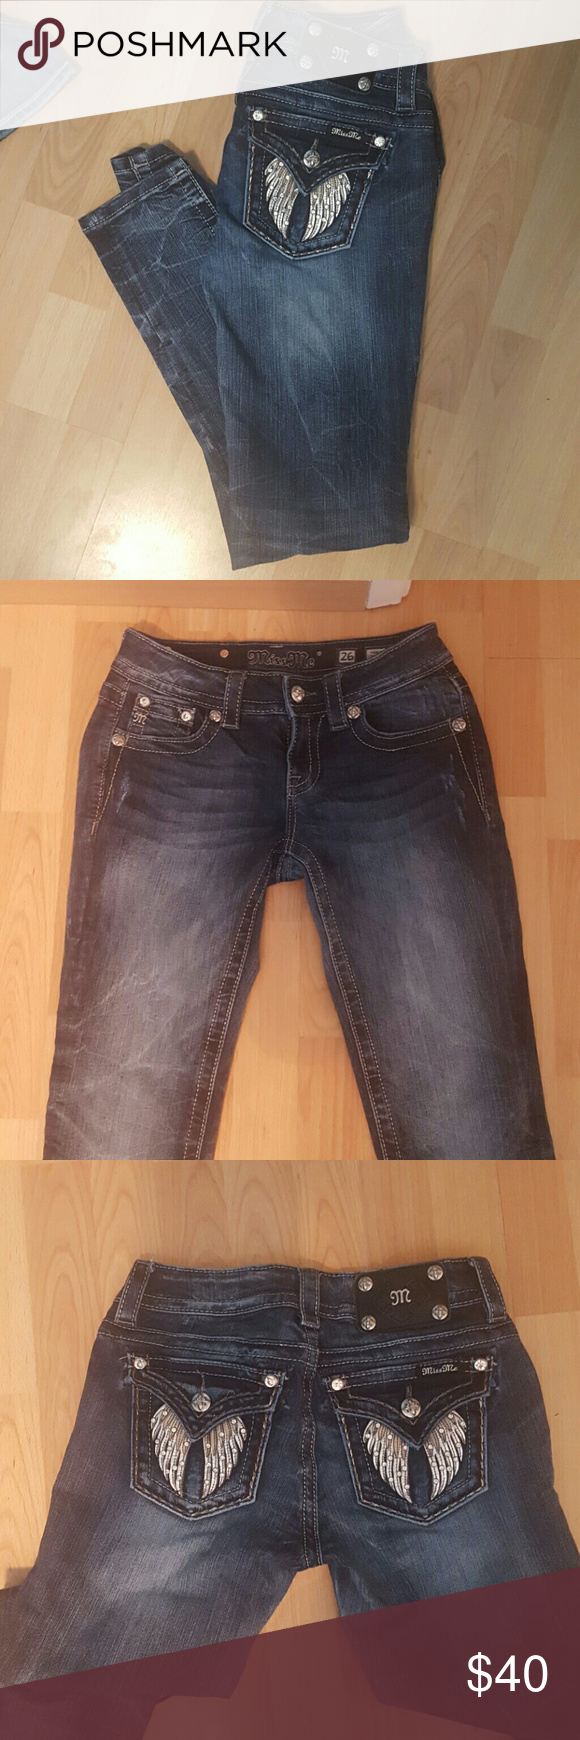 Miss Me Jeans Really nice condition only worn once dont fit me anymore Miss Me Jeans Skinny